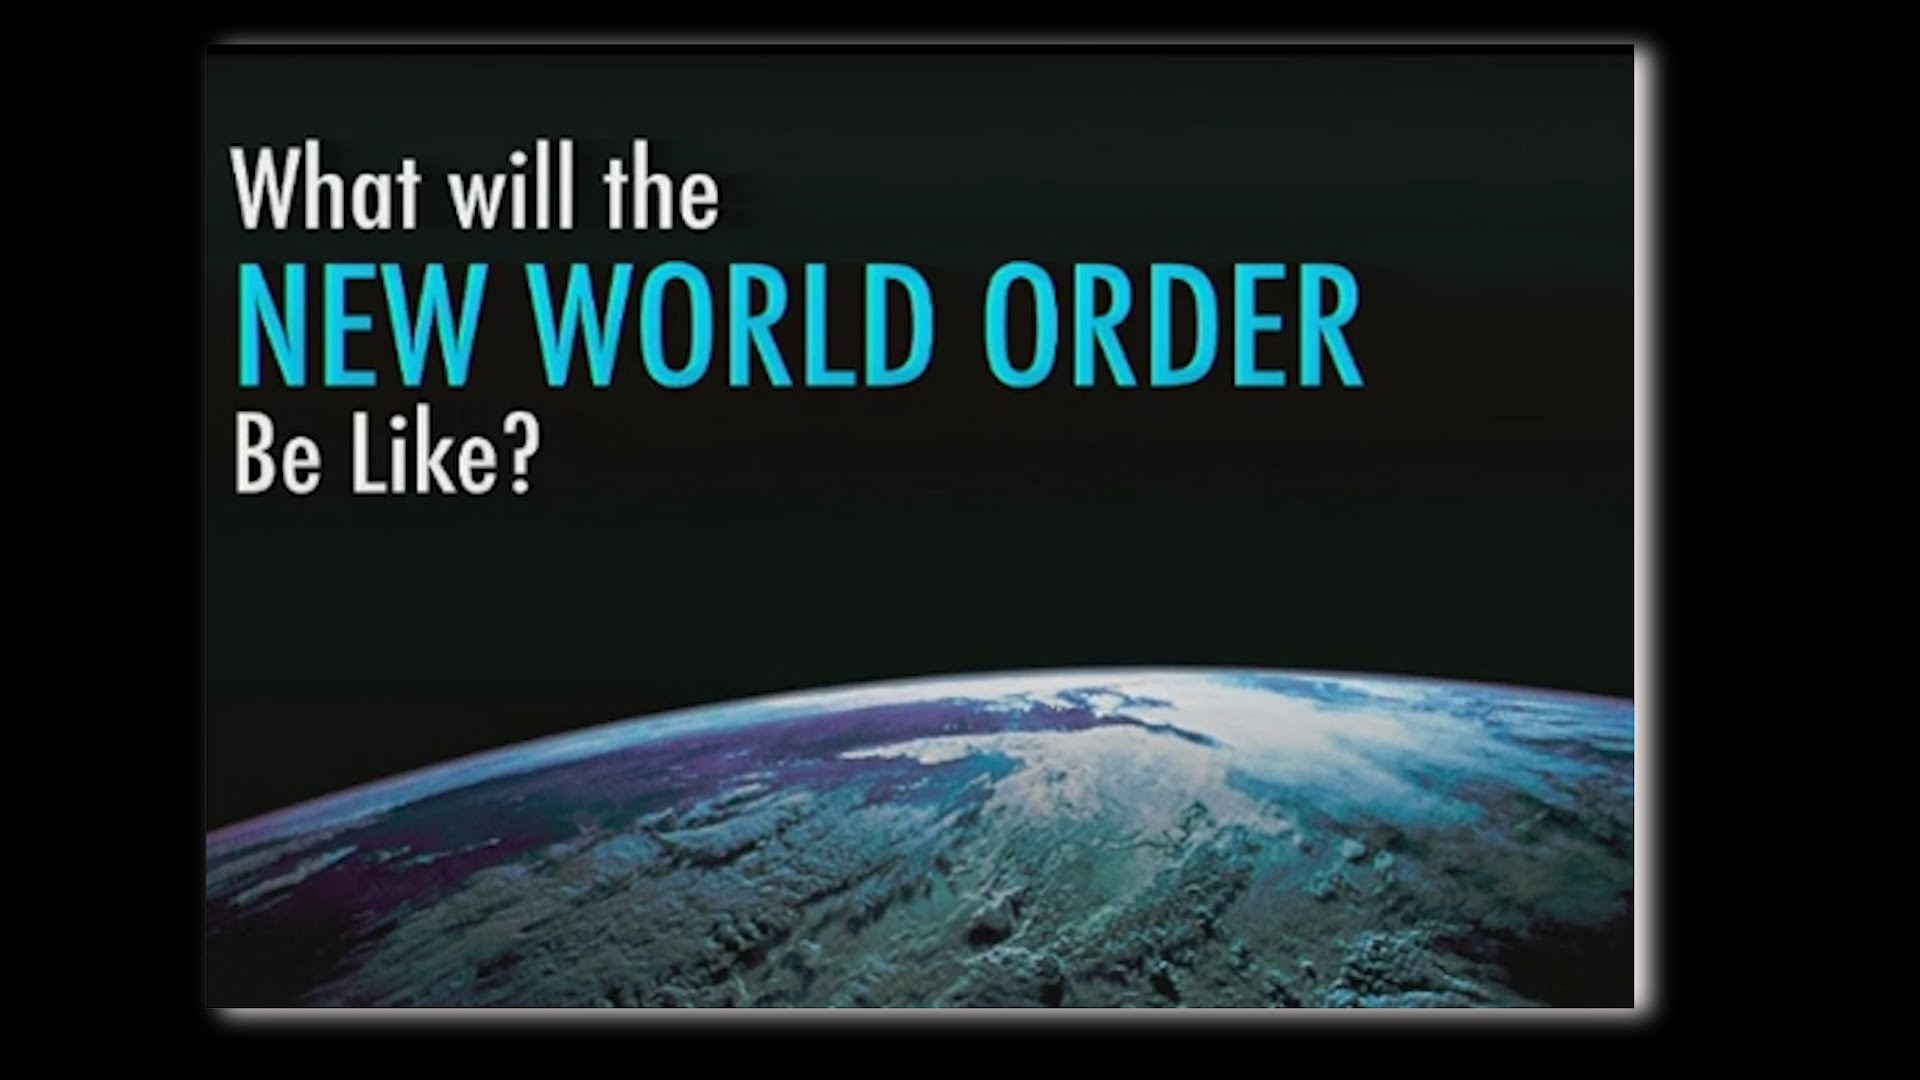 War Quote Wallpaper Hd New World Order Wallpapers 72 Images